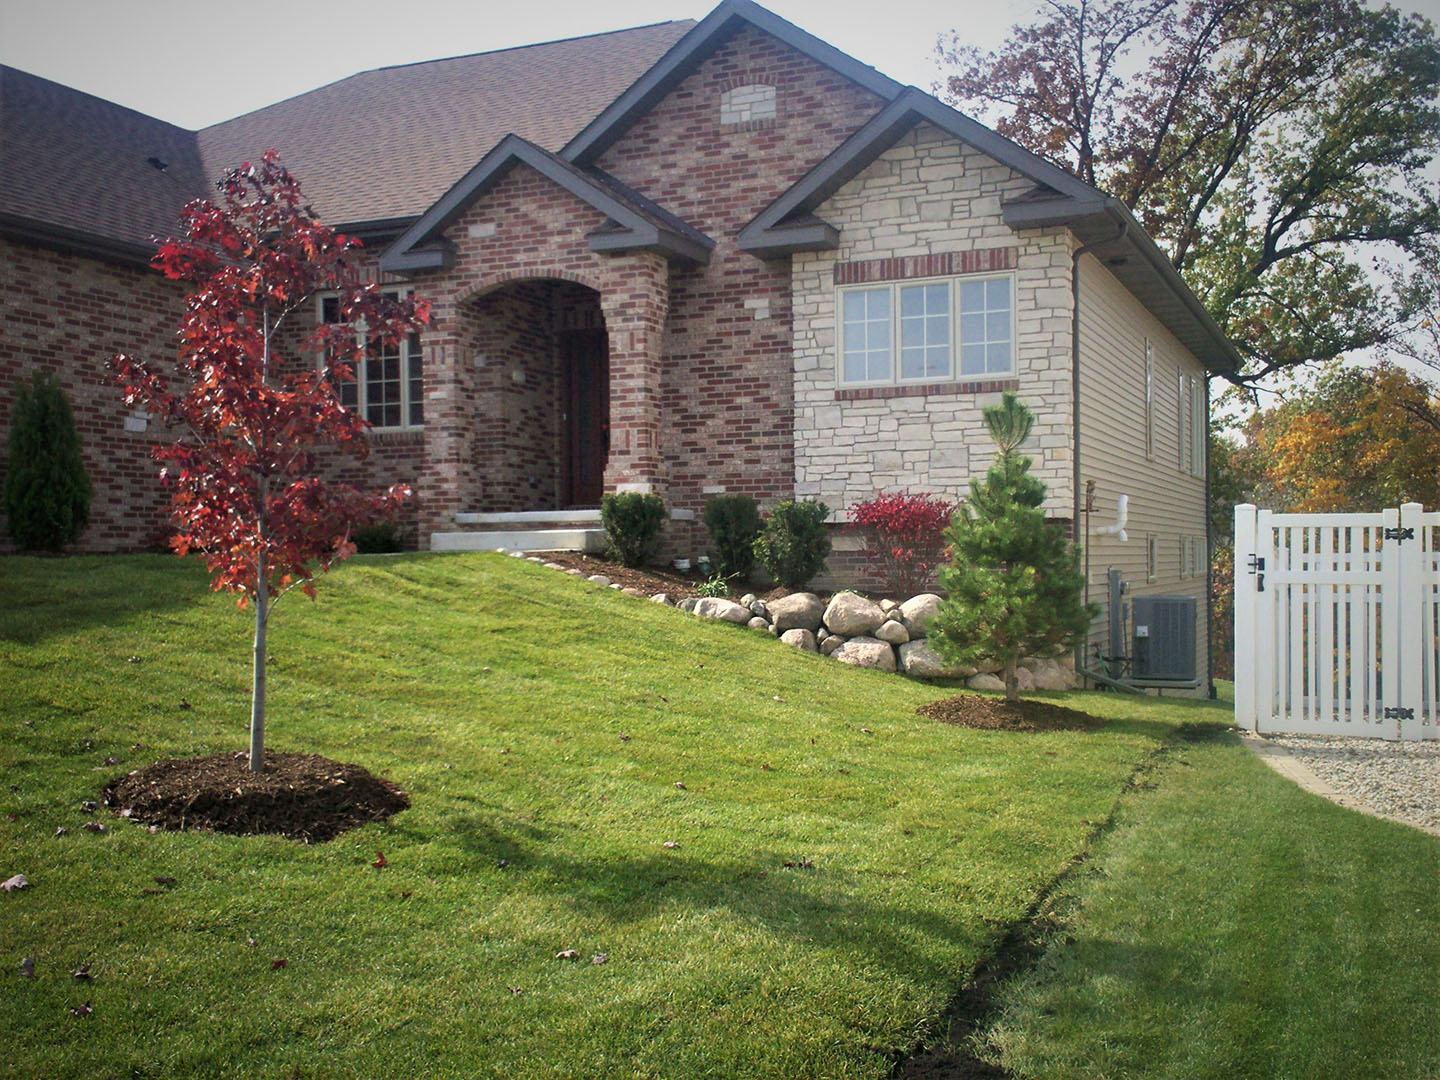 We make certain our design add curb appeal and compliment the beauty of your home